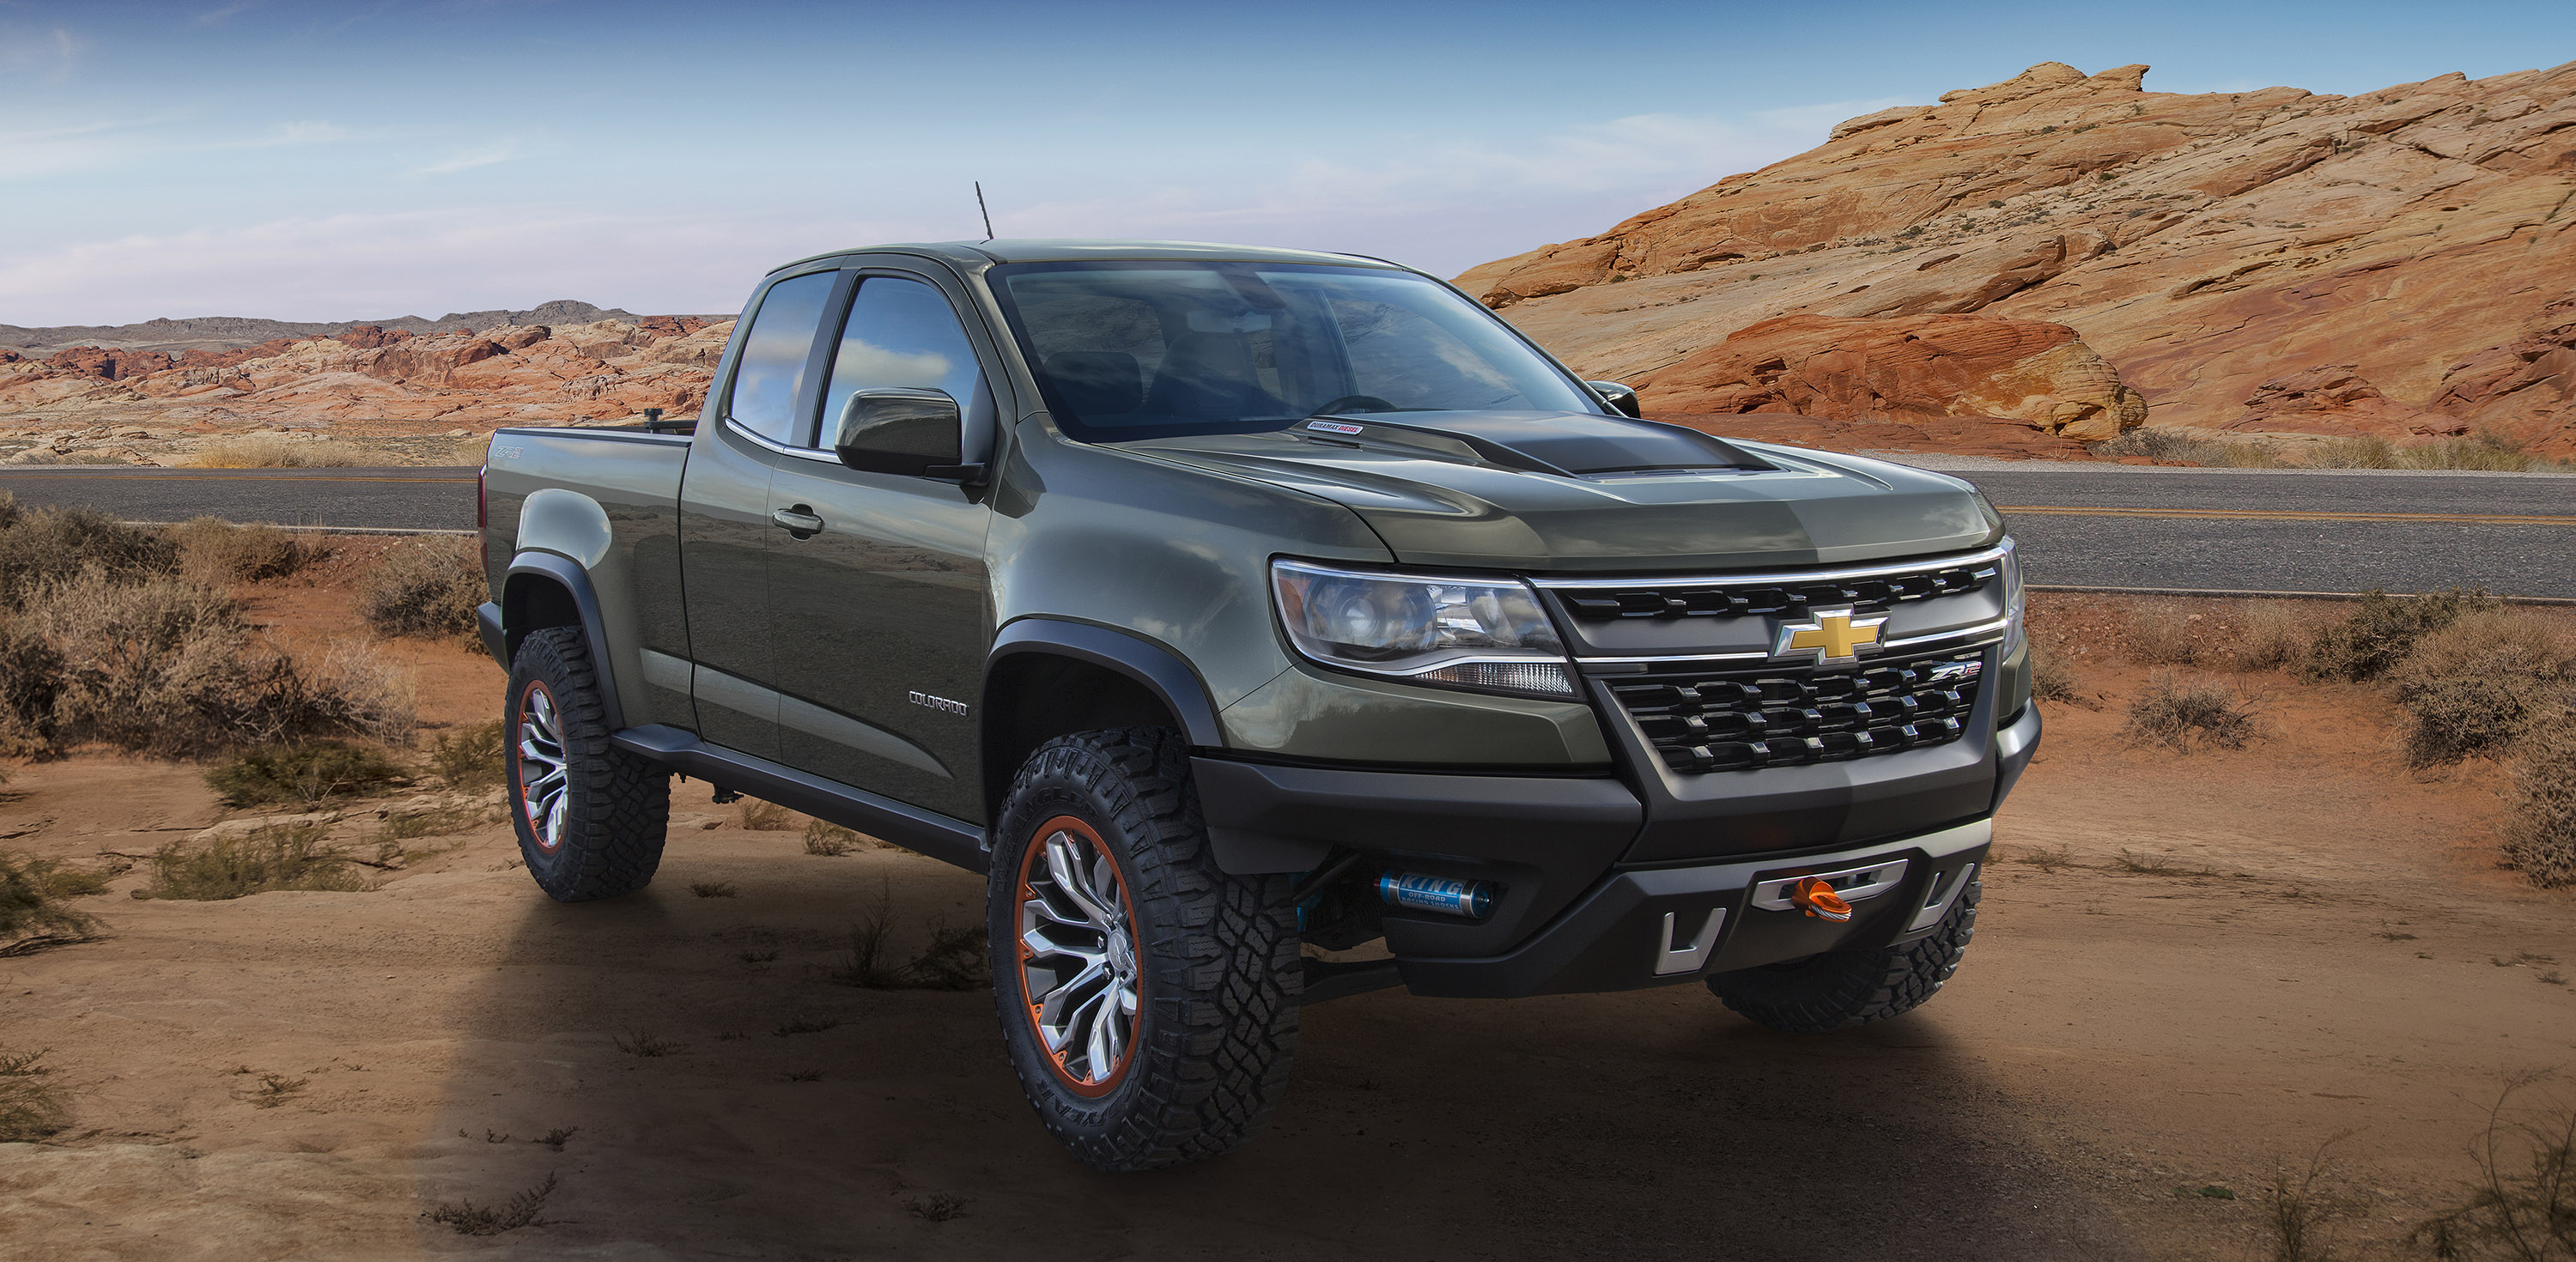 chevrolet colorado gets zr2 concept with turbodiesel power 2014 los angeles auto show. Black Bedroom Furniture Sets. Home Design Ideas